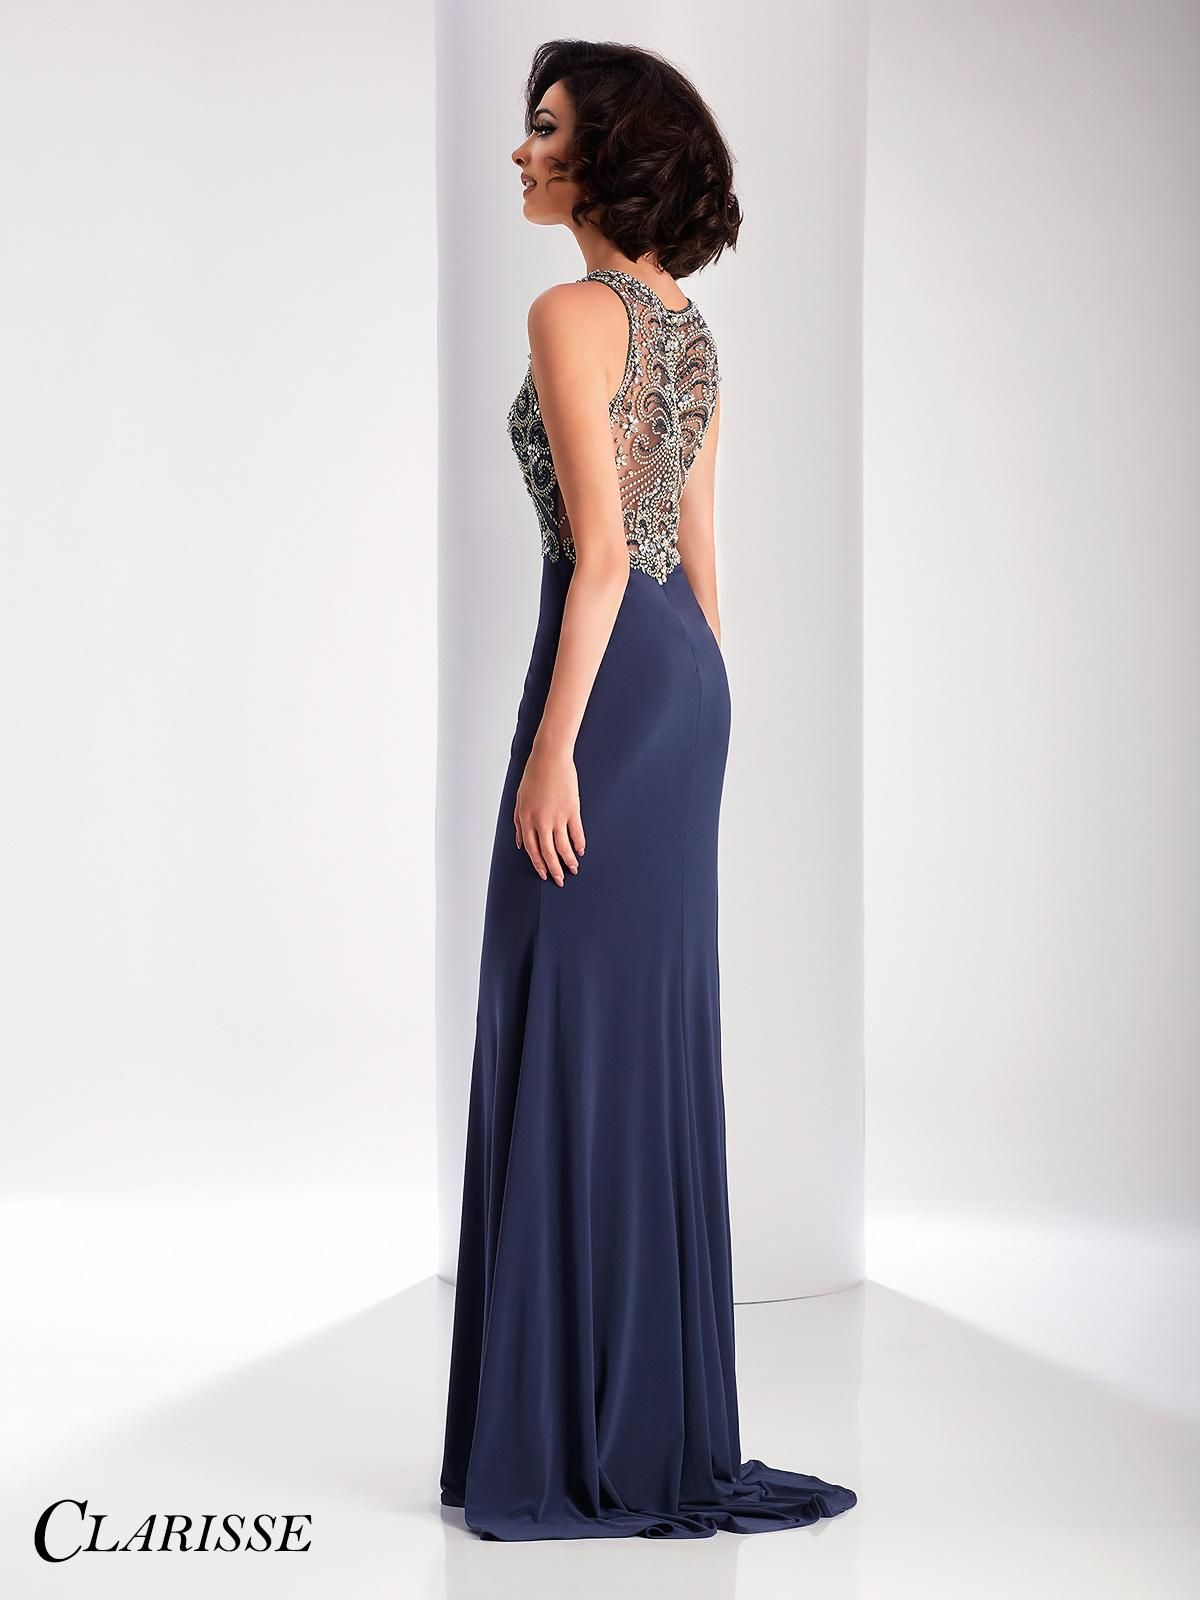 Sparkly fitted clarisse prom dress have all eyes on you